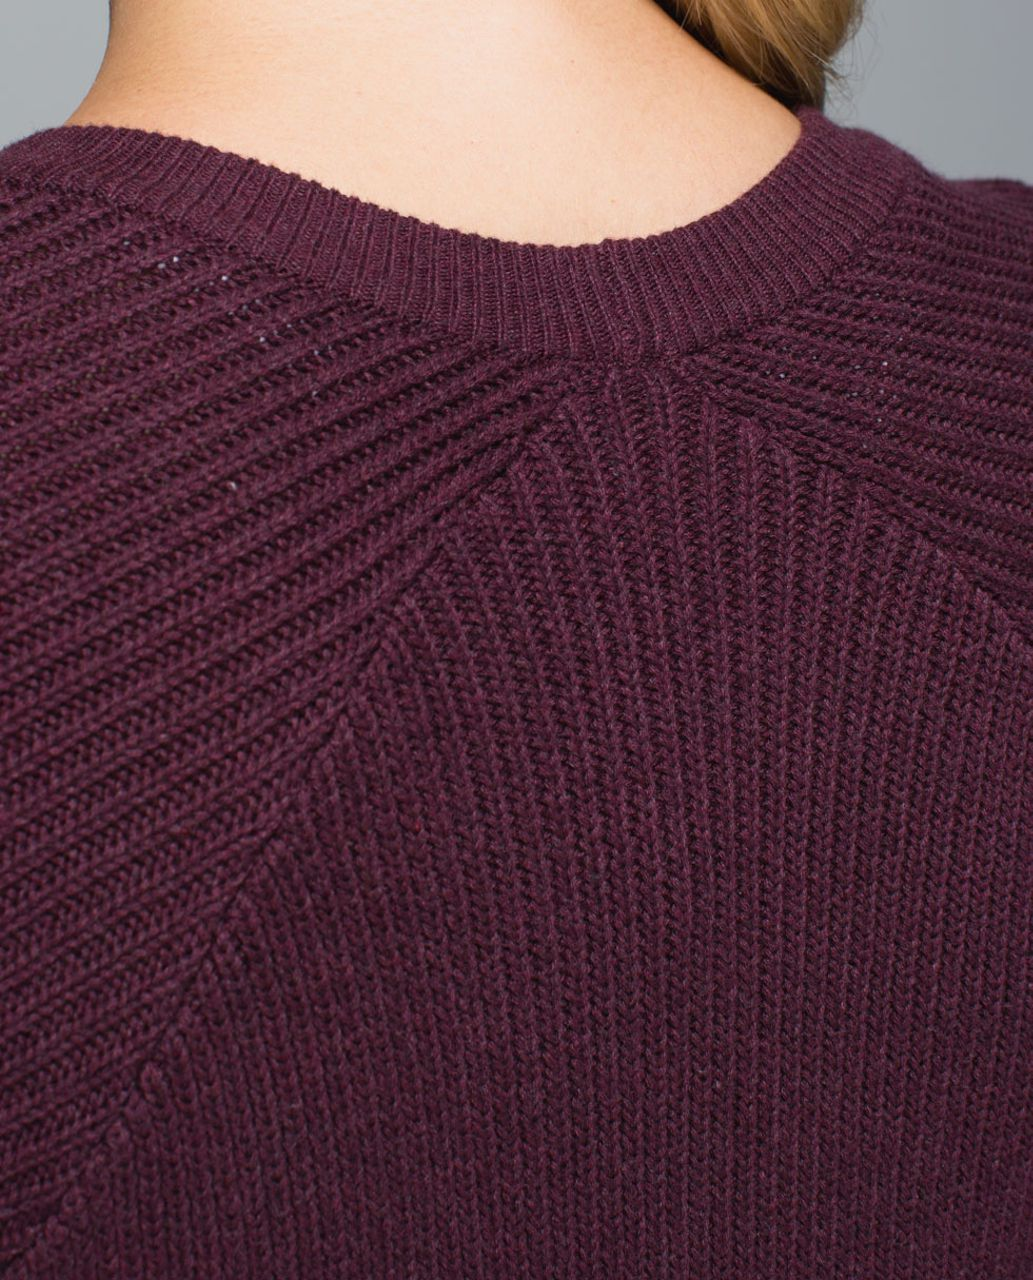 Lululemon The Sweater The Better - Heathered Bordeaux Drama